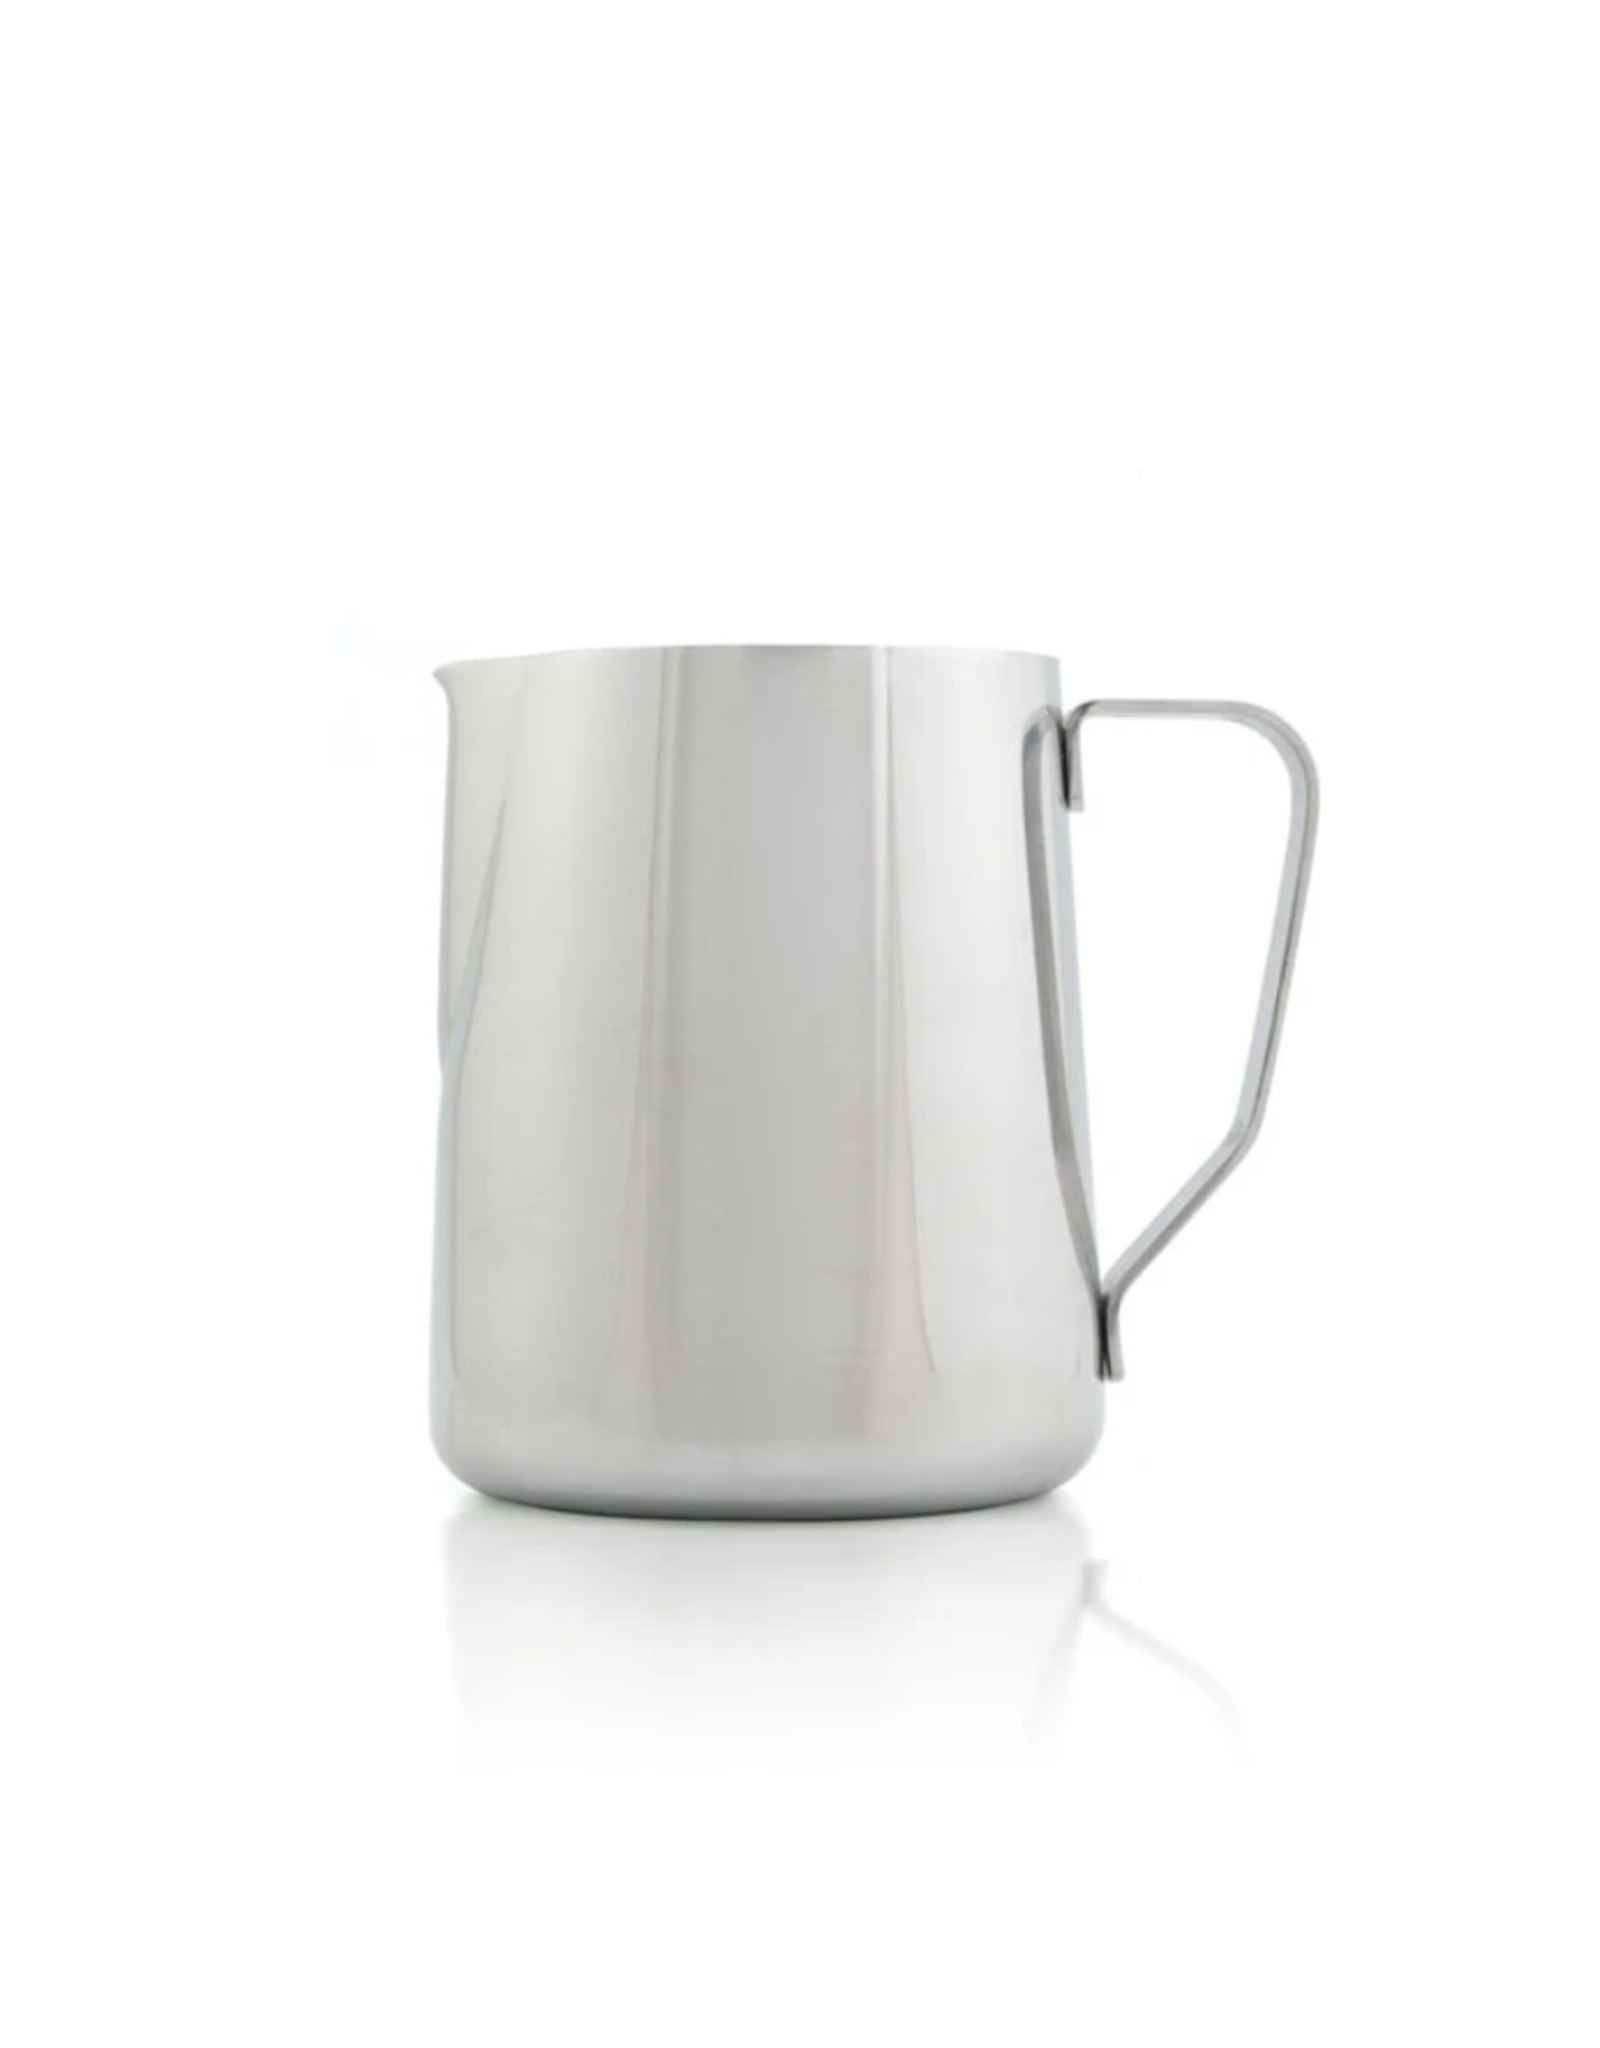 Barista Basics Barista Basics 590ml Milk Pitcher